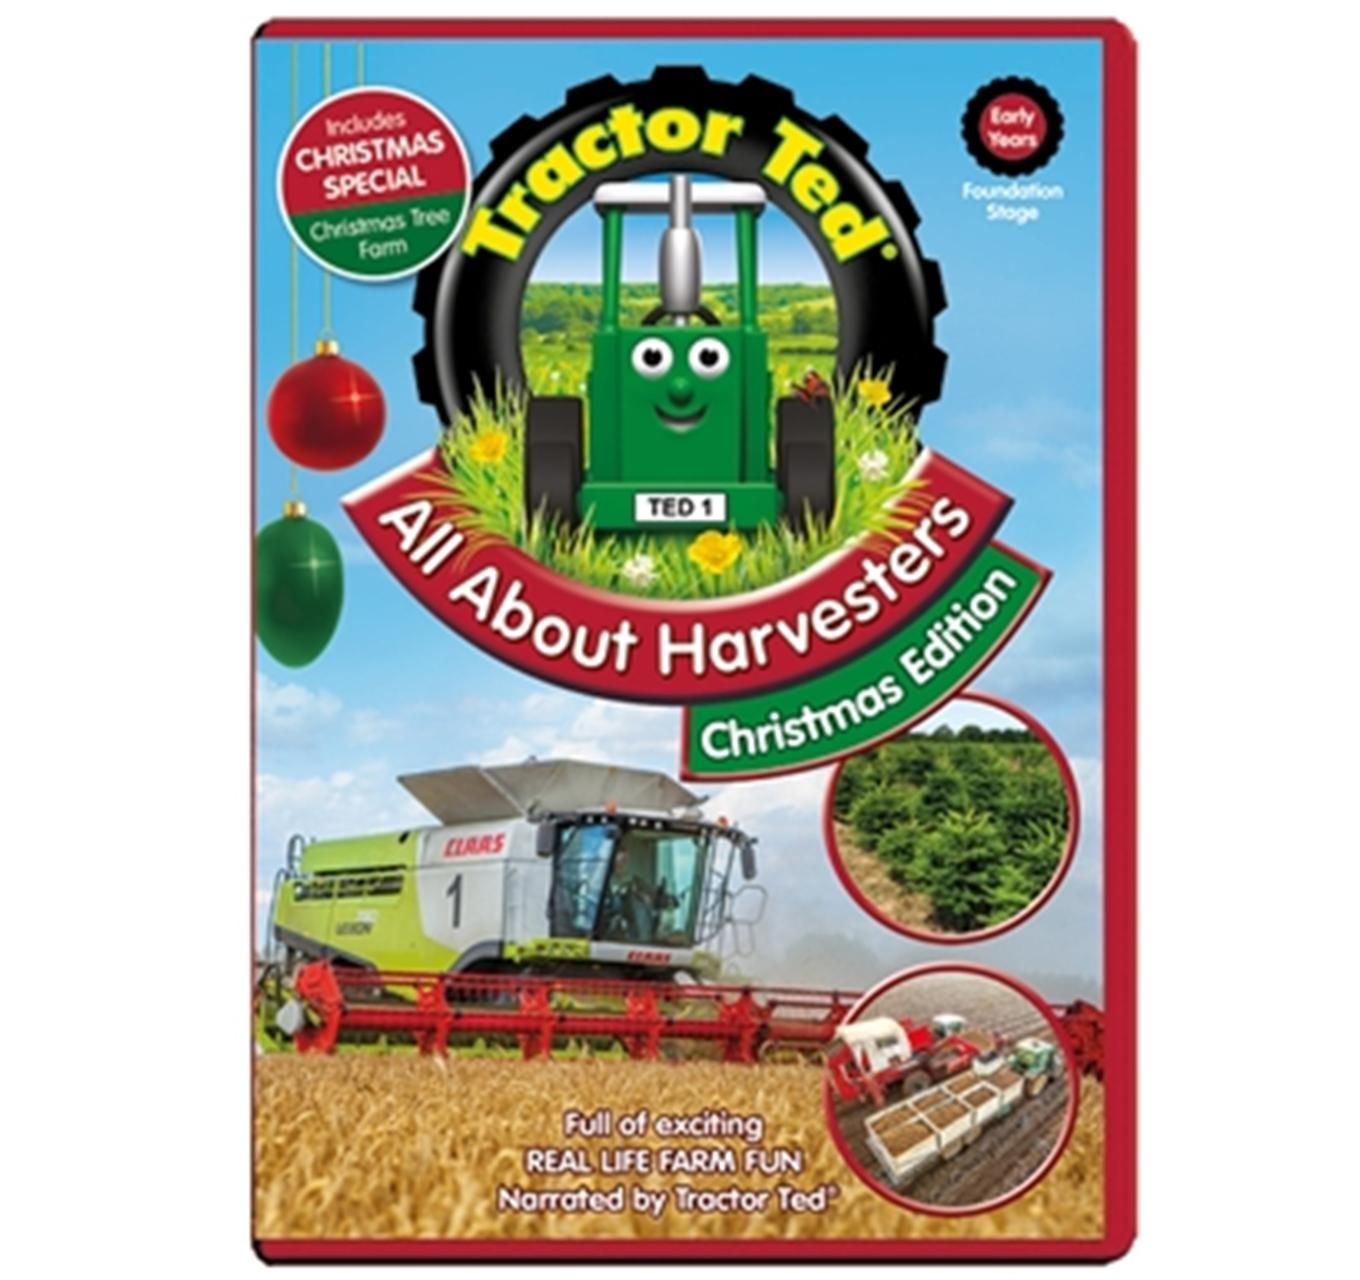 All About Harvesters - Xmas